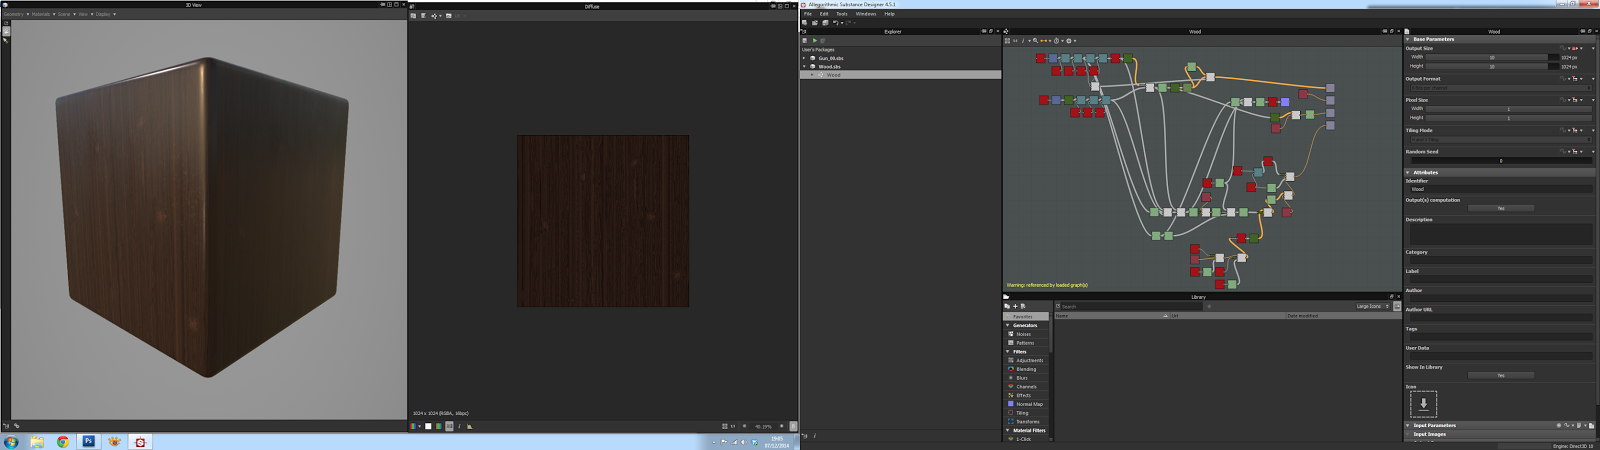 Substance_Wood.png